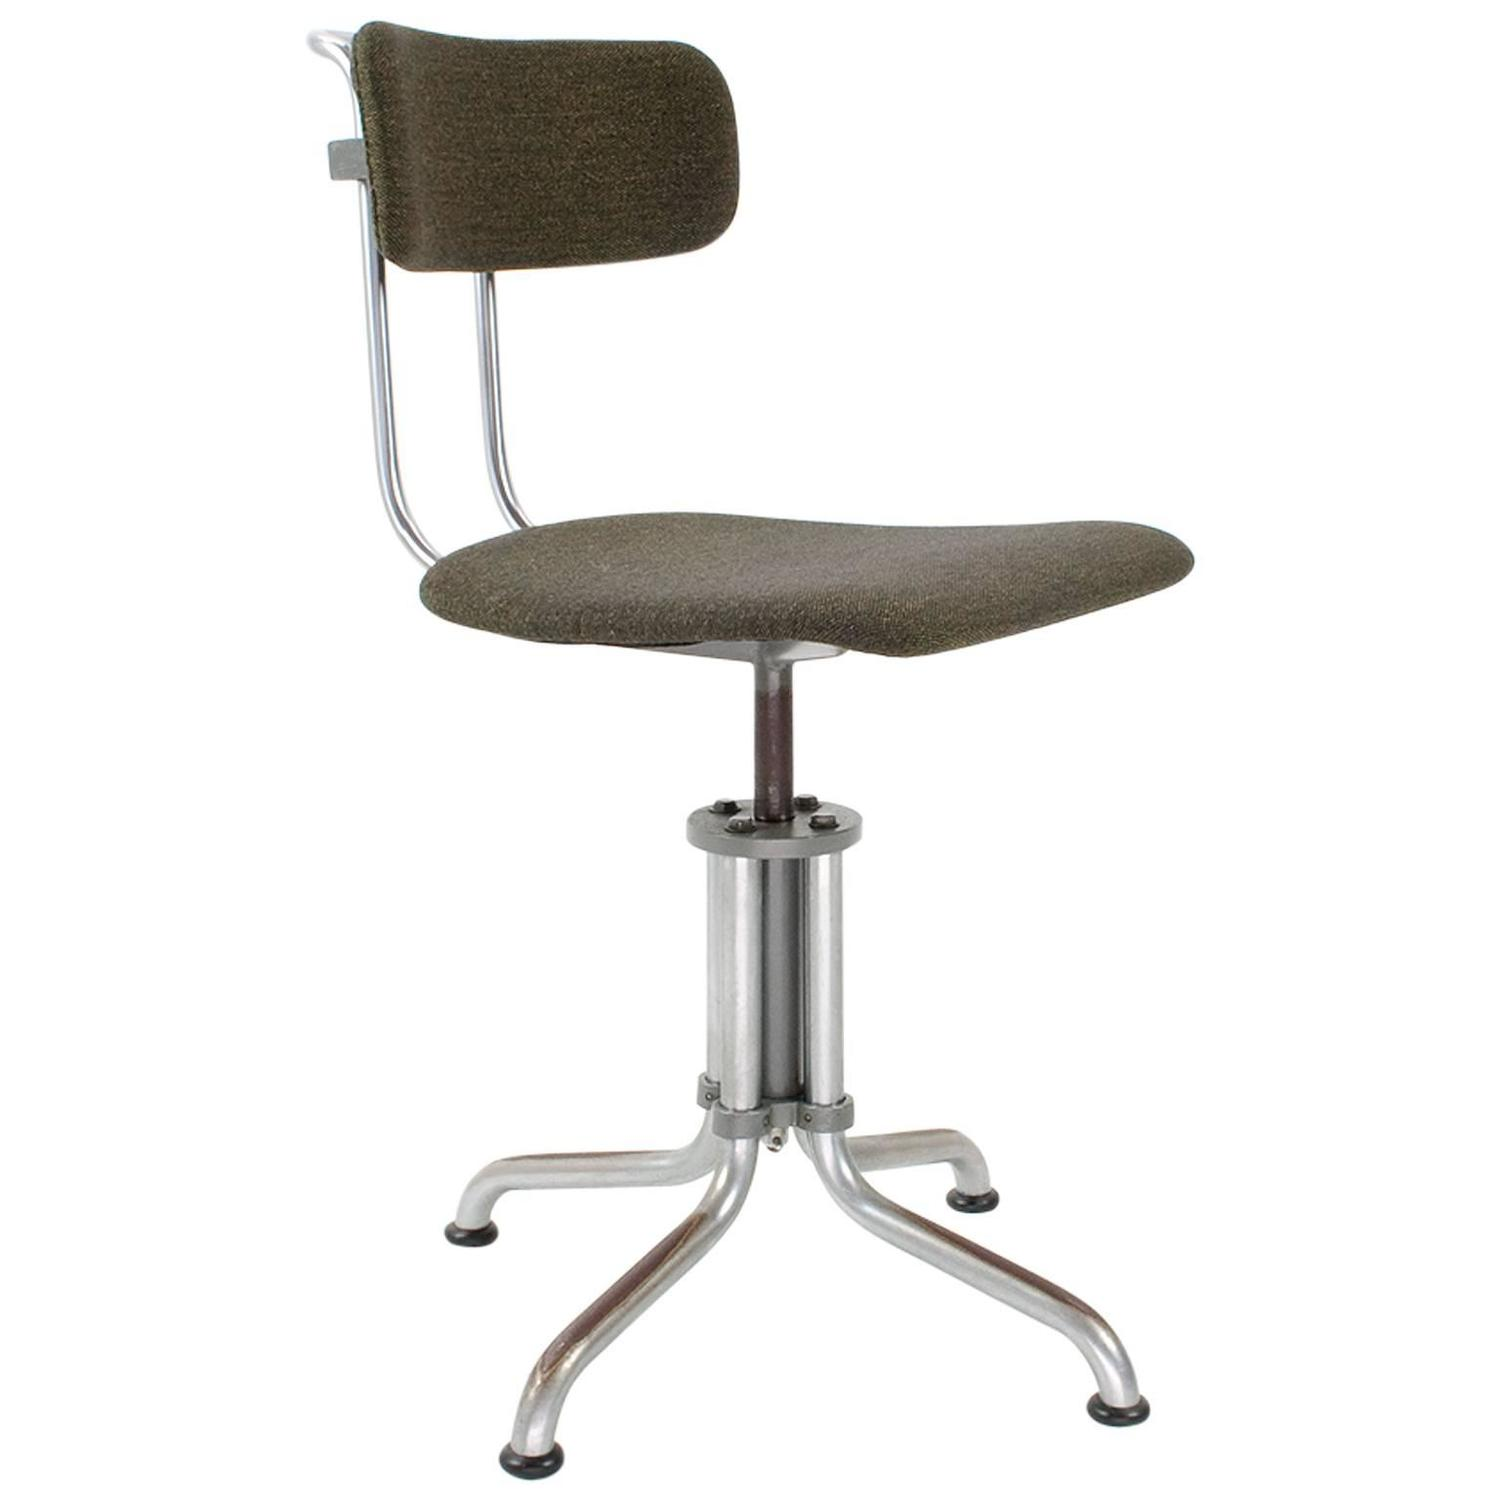 swivel chair feet execution electric for sale 1933 mid century dutch office with foot model